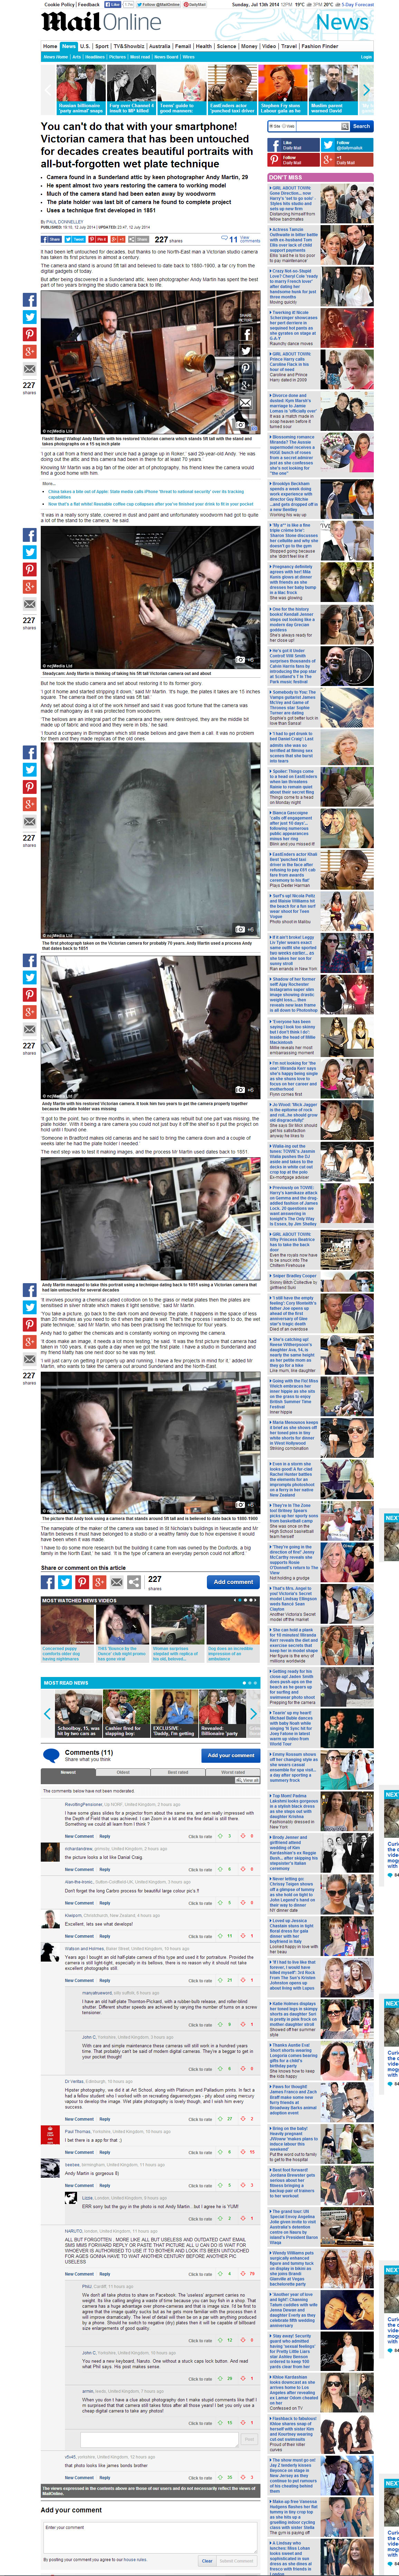 Andy Martin - Daily Mail article on Victorian Studio Camera - June 2014